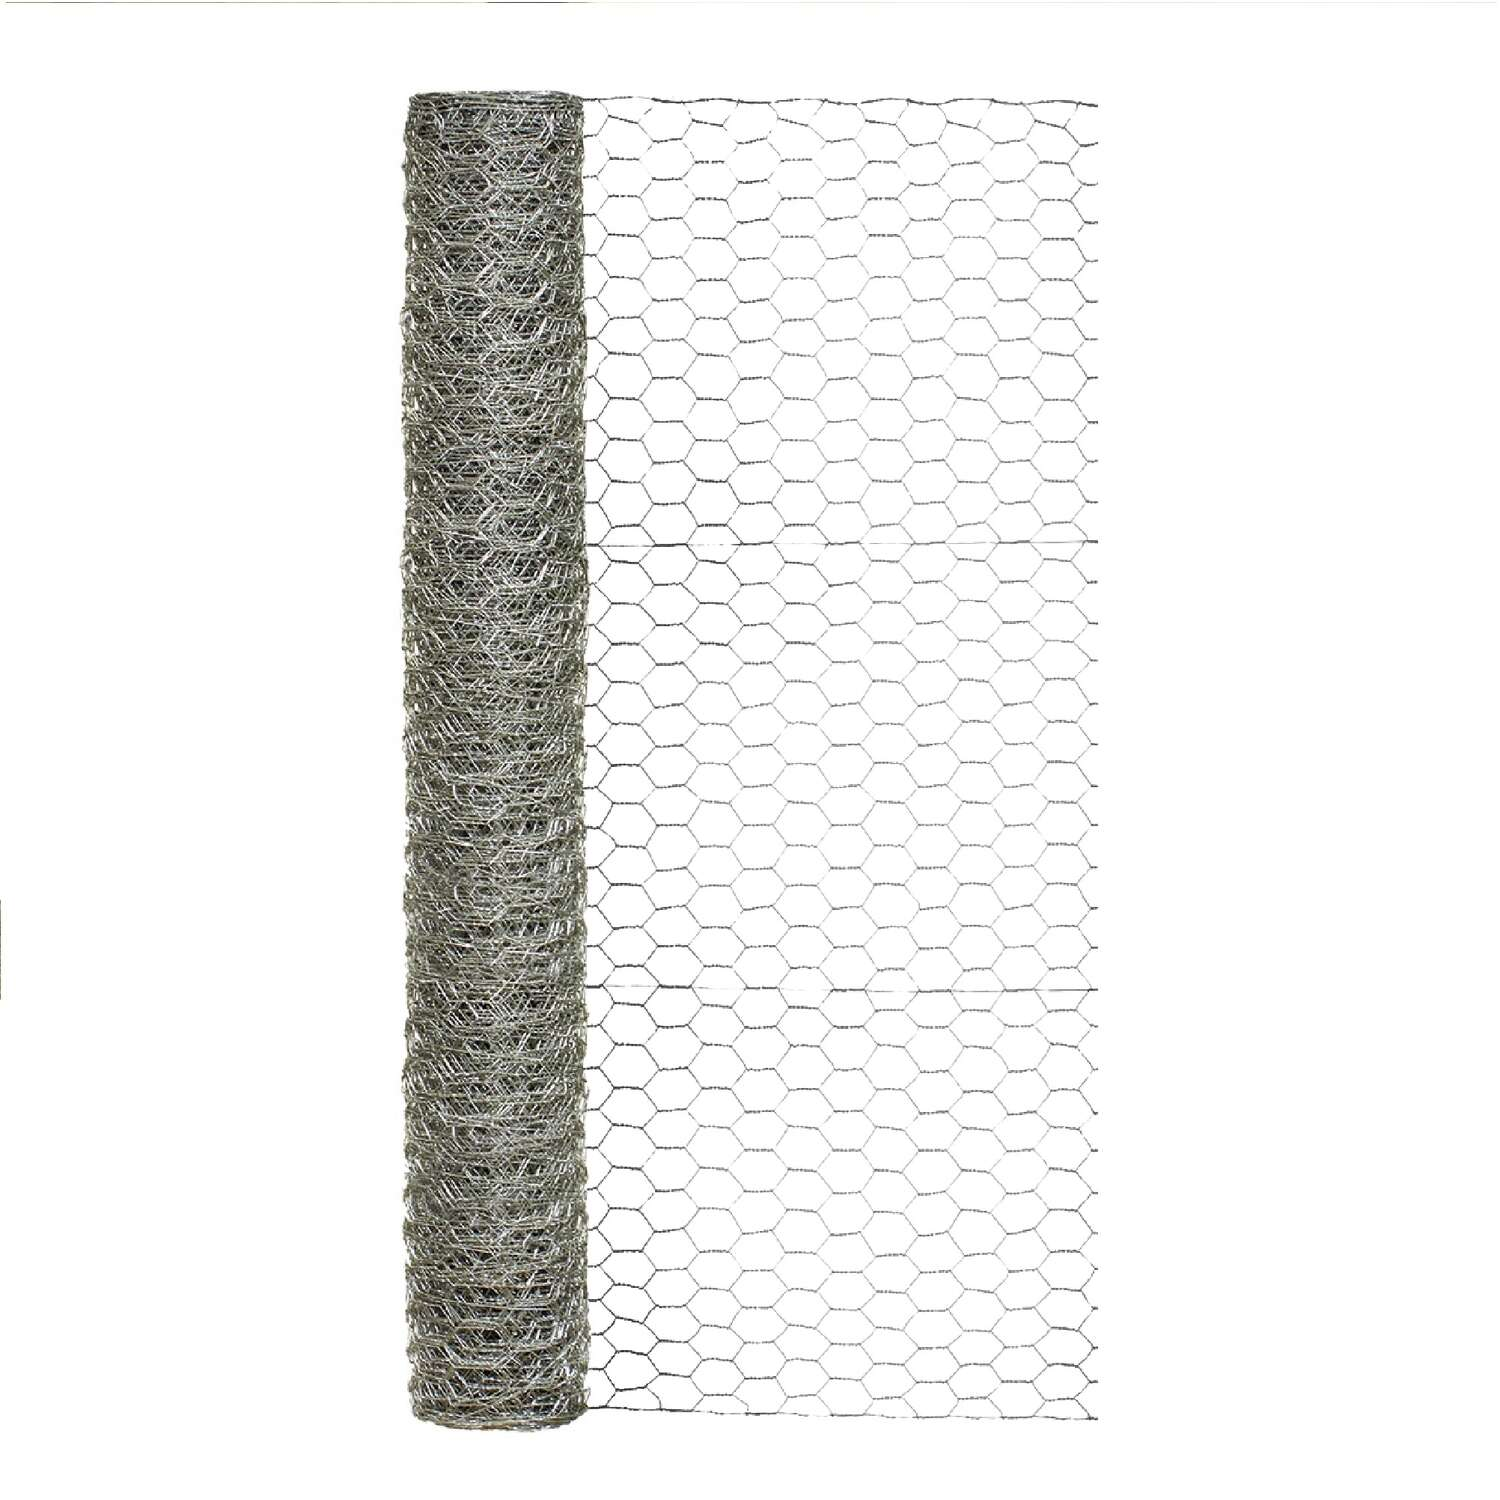 Garden Craft 36 in. H x 25 ft. L 20 Ga. Silver Poultry Netting